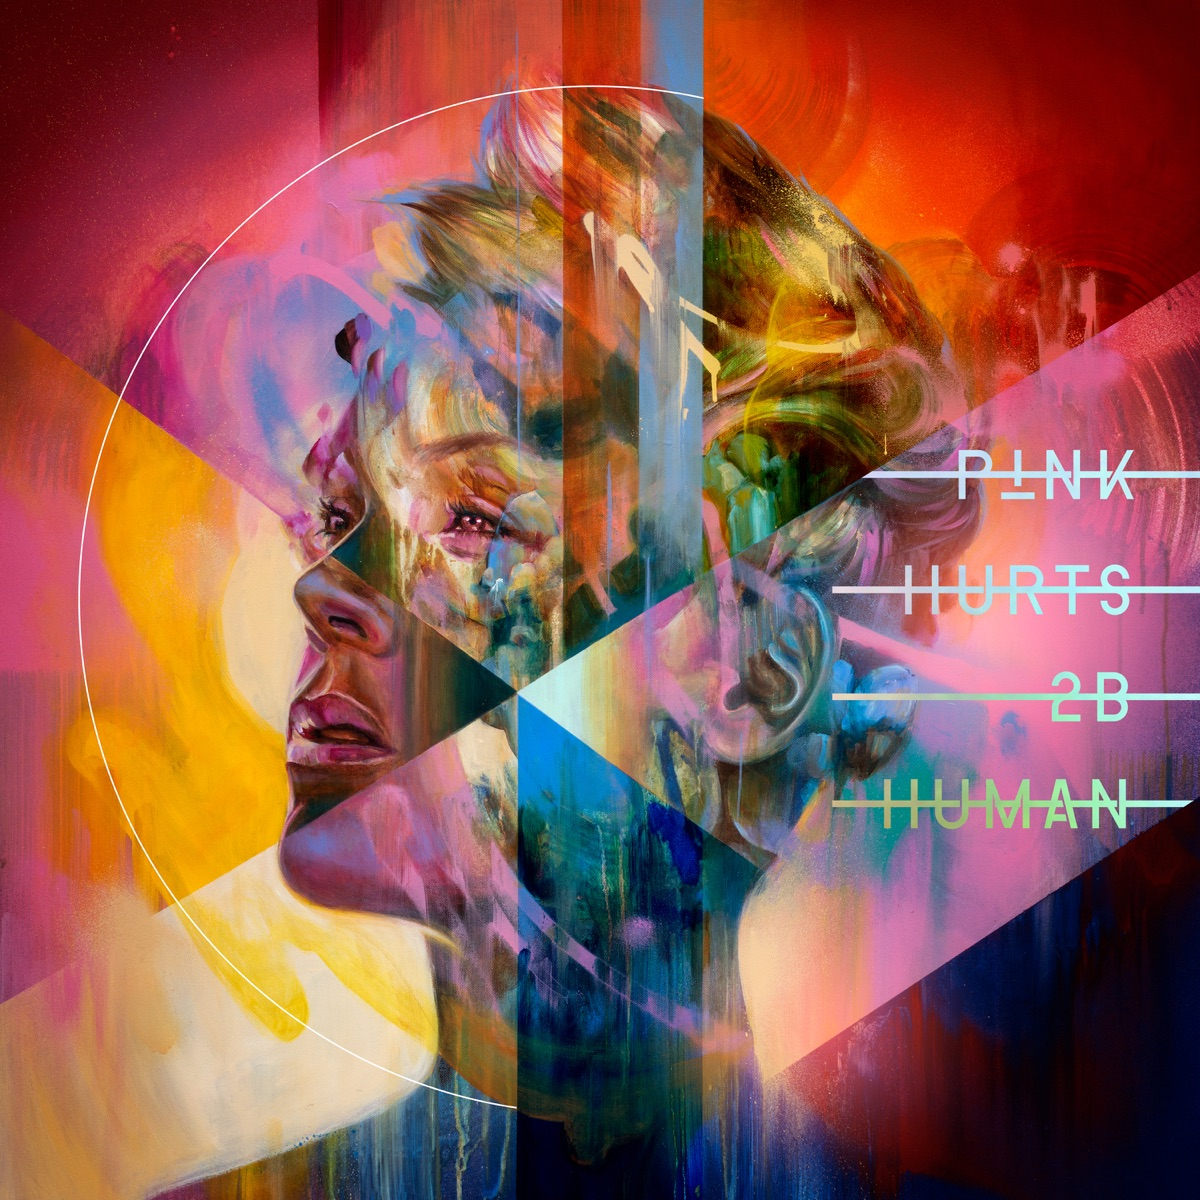 Hurts 2B Human Pnk CD cover